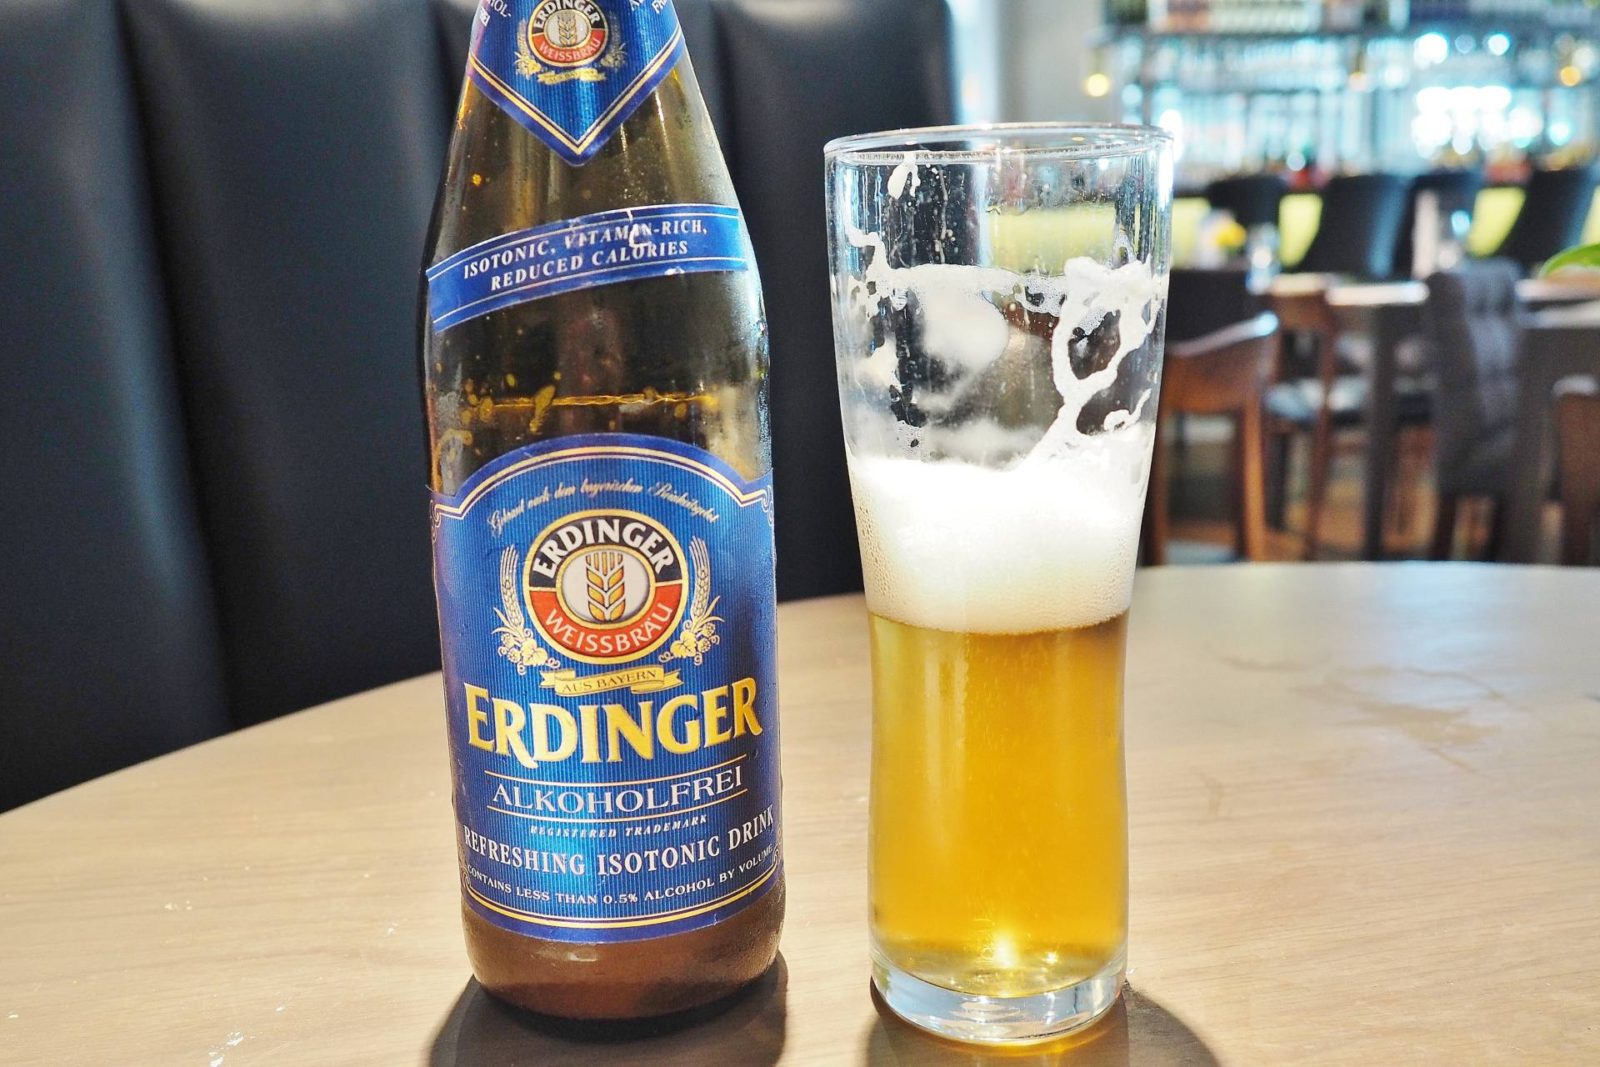 The Almanack Kenilworth Erdinger